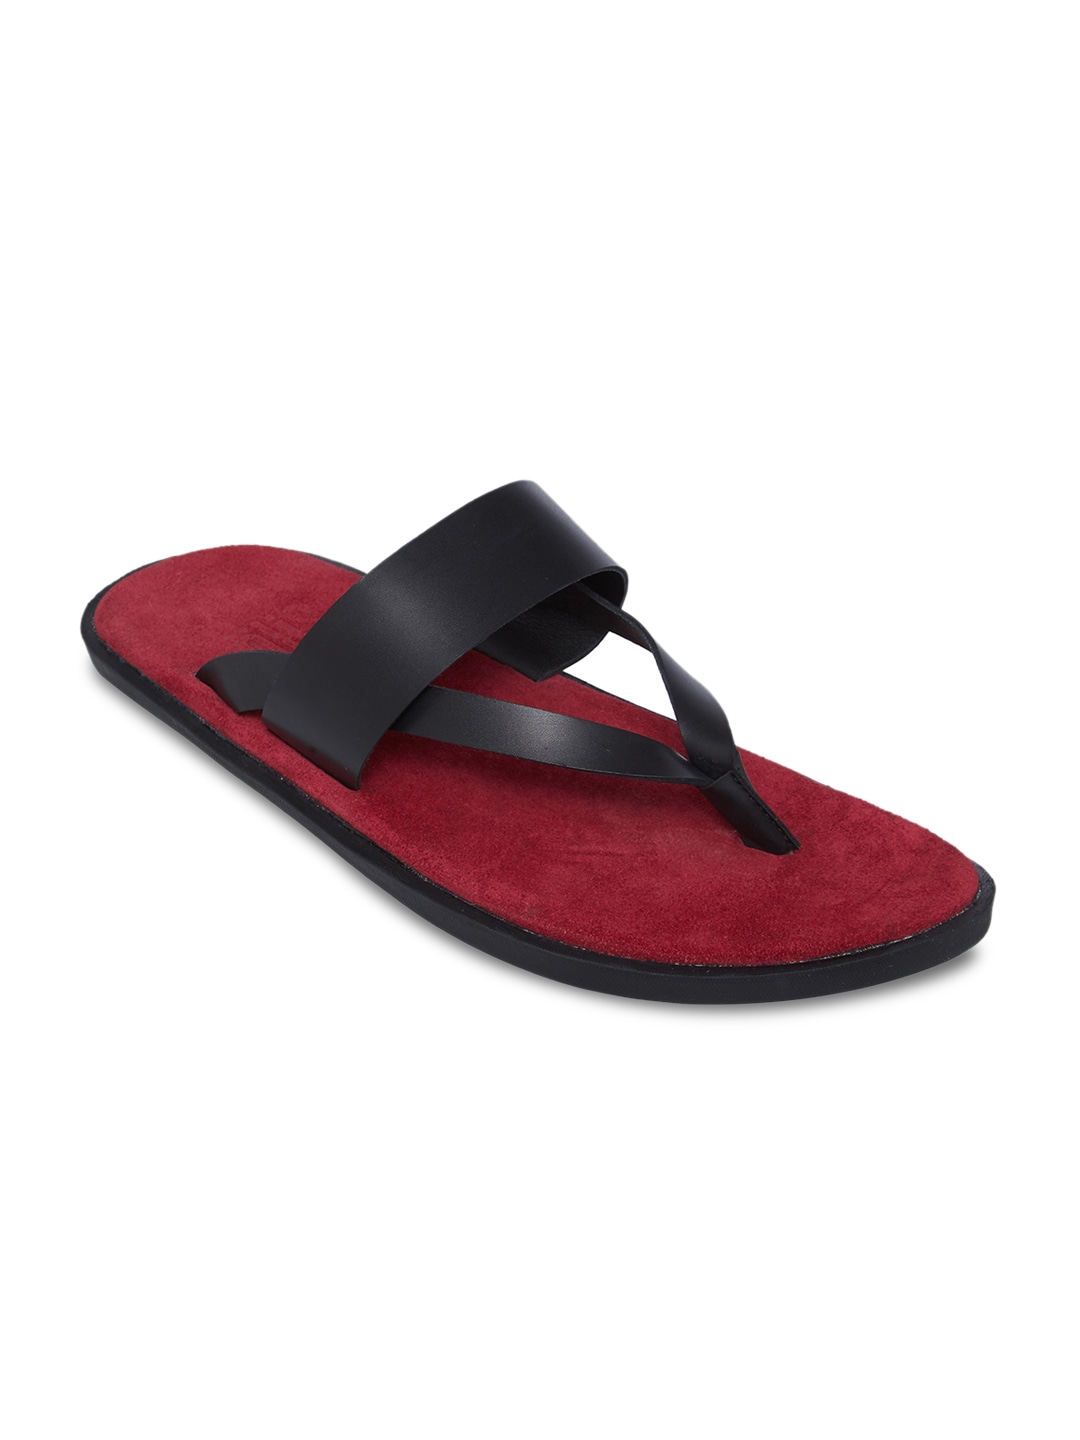 997317de5e1 Red Sandal & Shoes - Buy Red Sandal & Shoes online in India